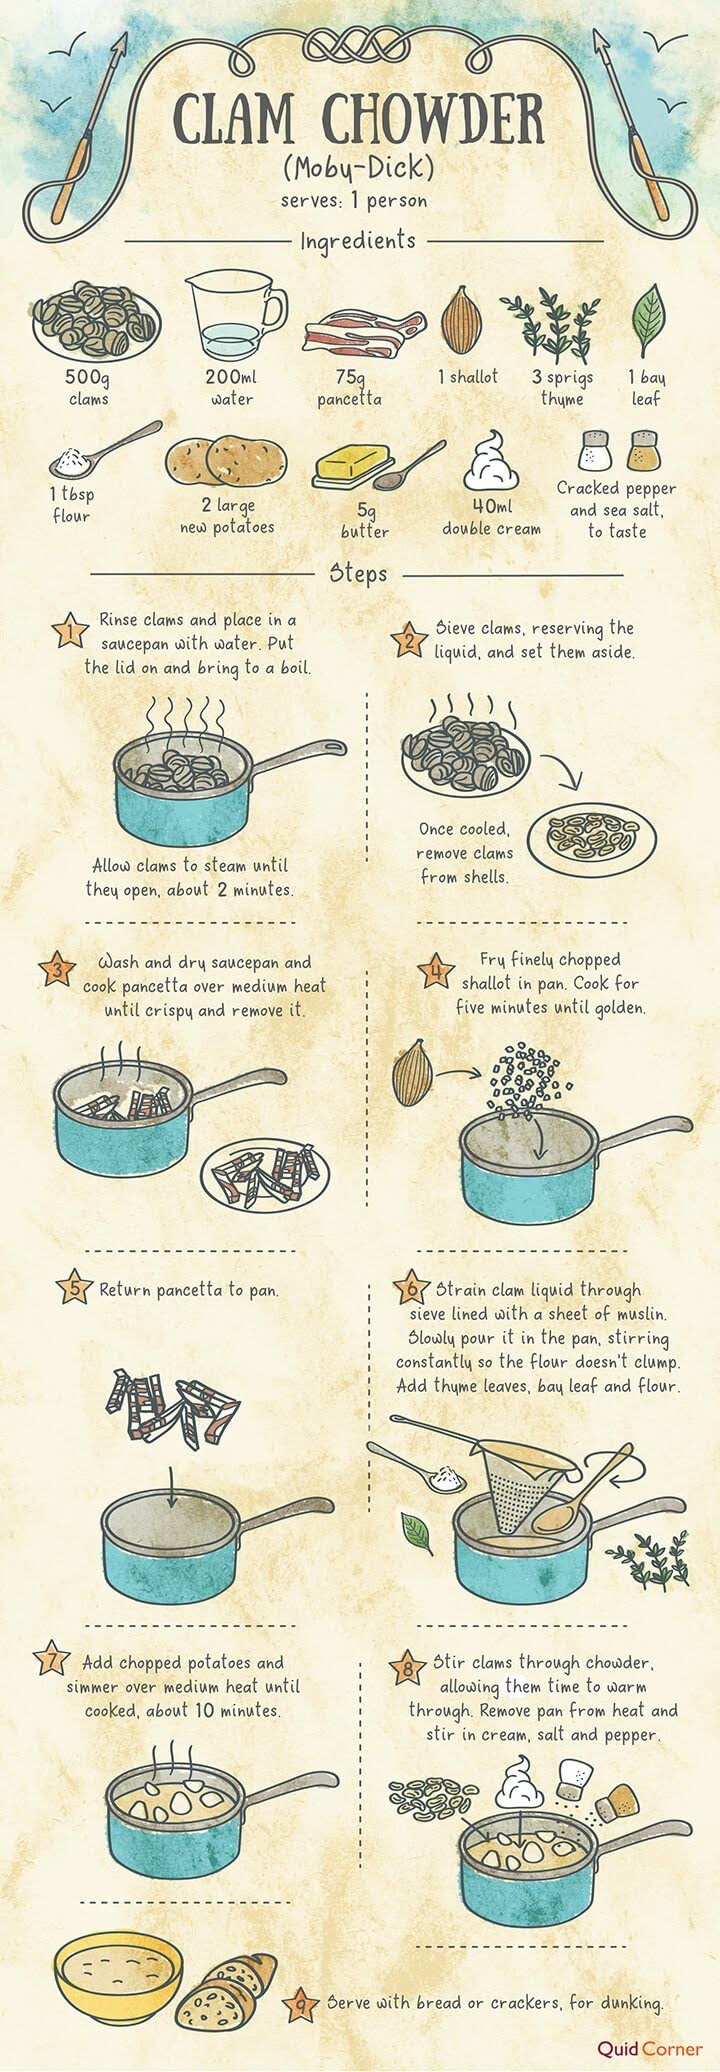 7 Dishes From Famous Books (And How to Make Them)